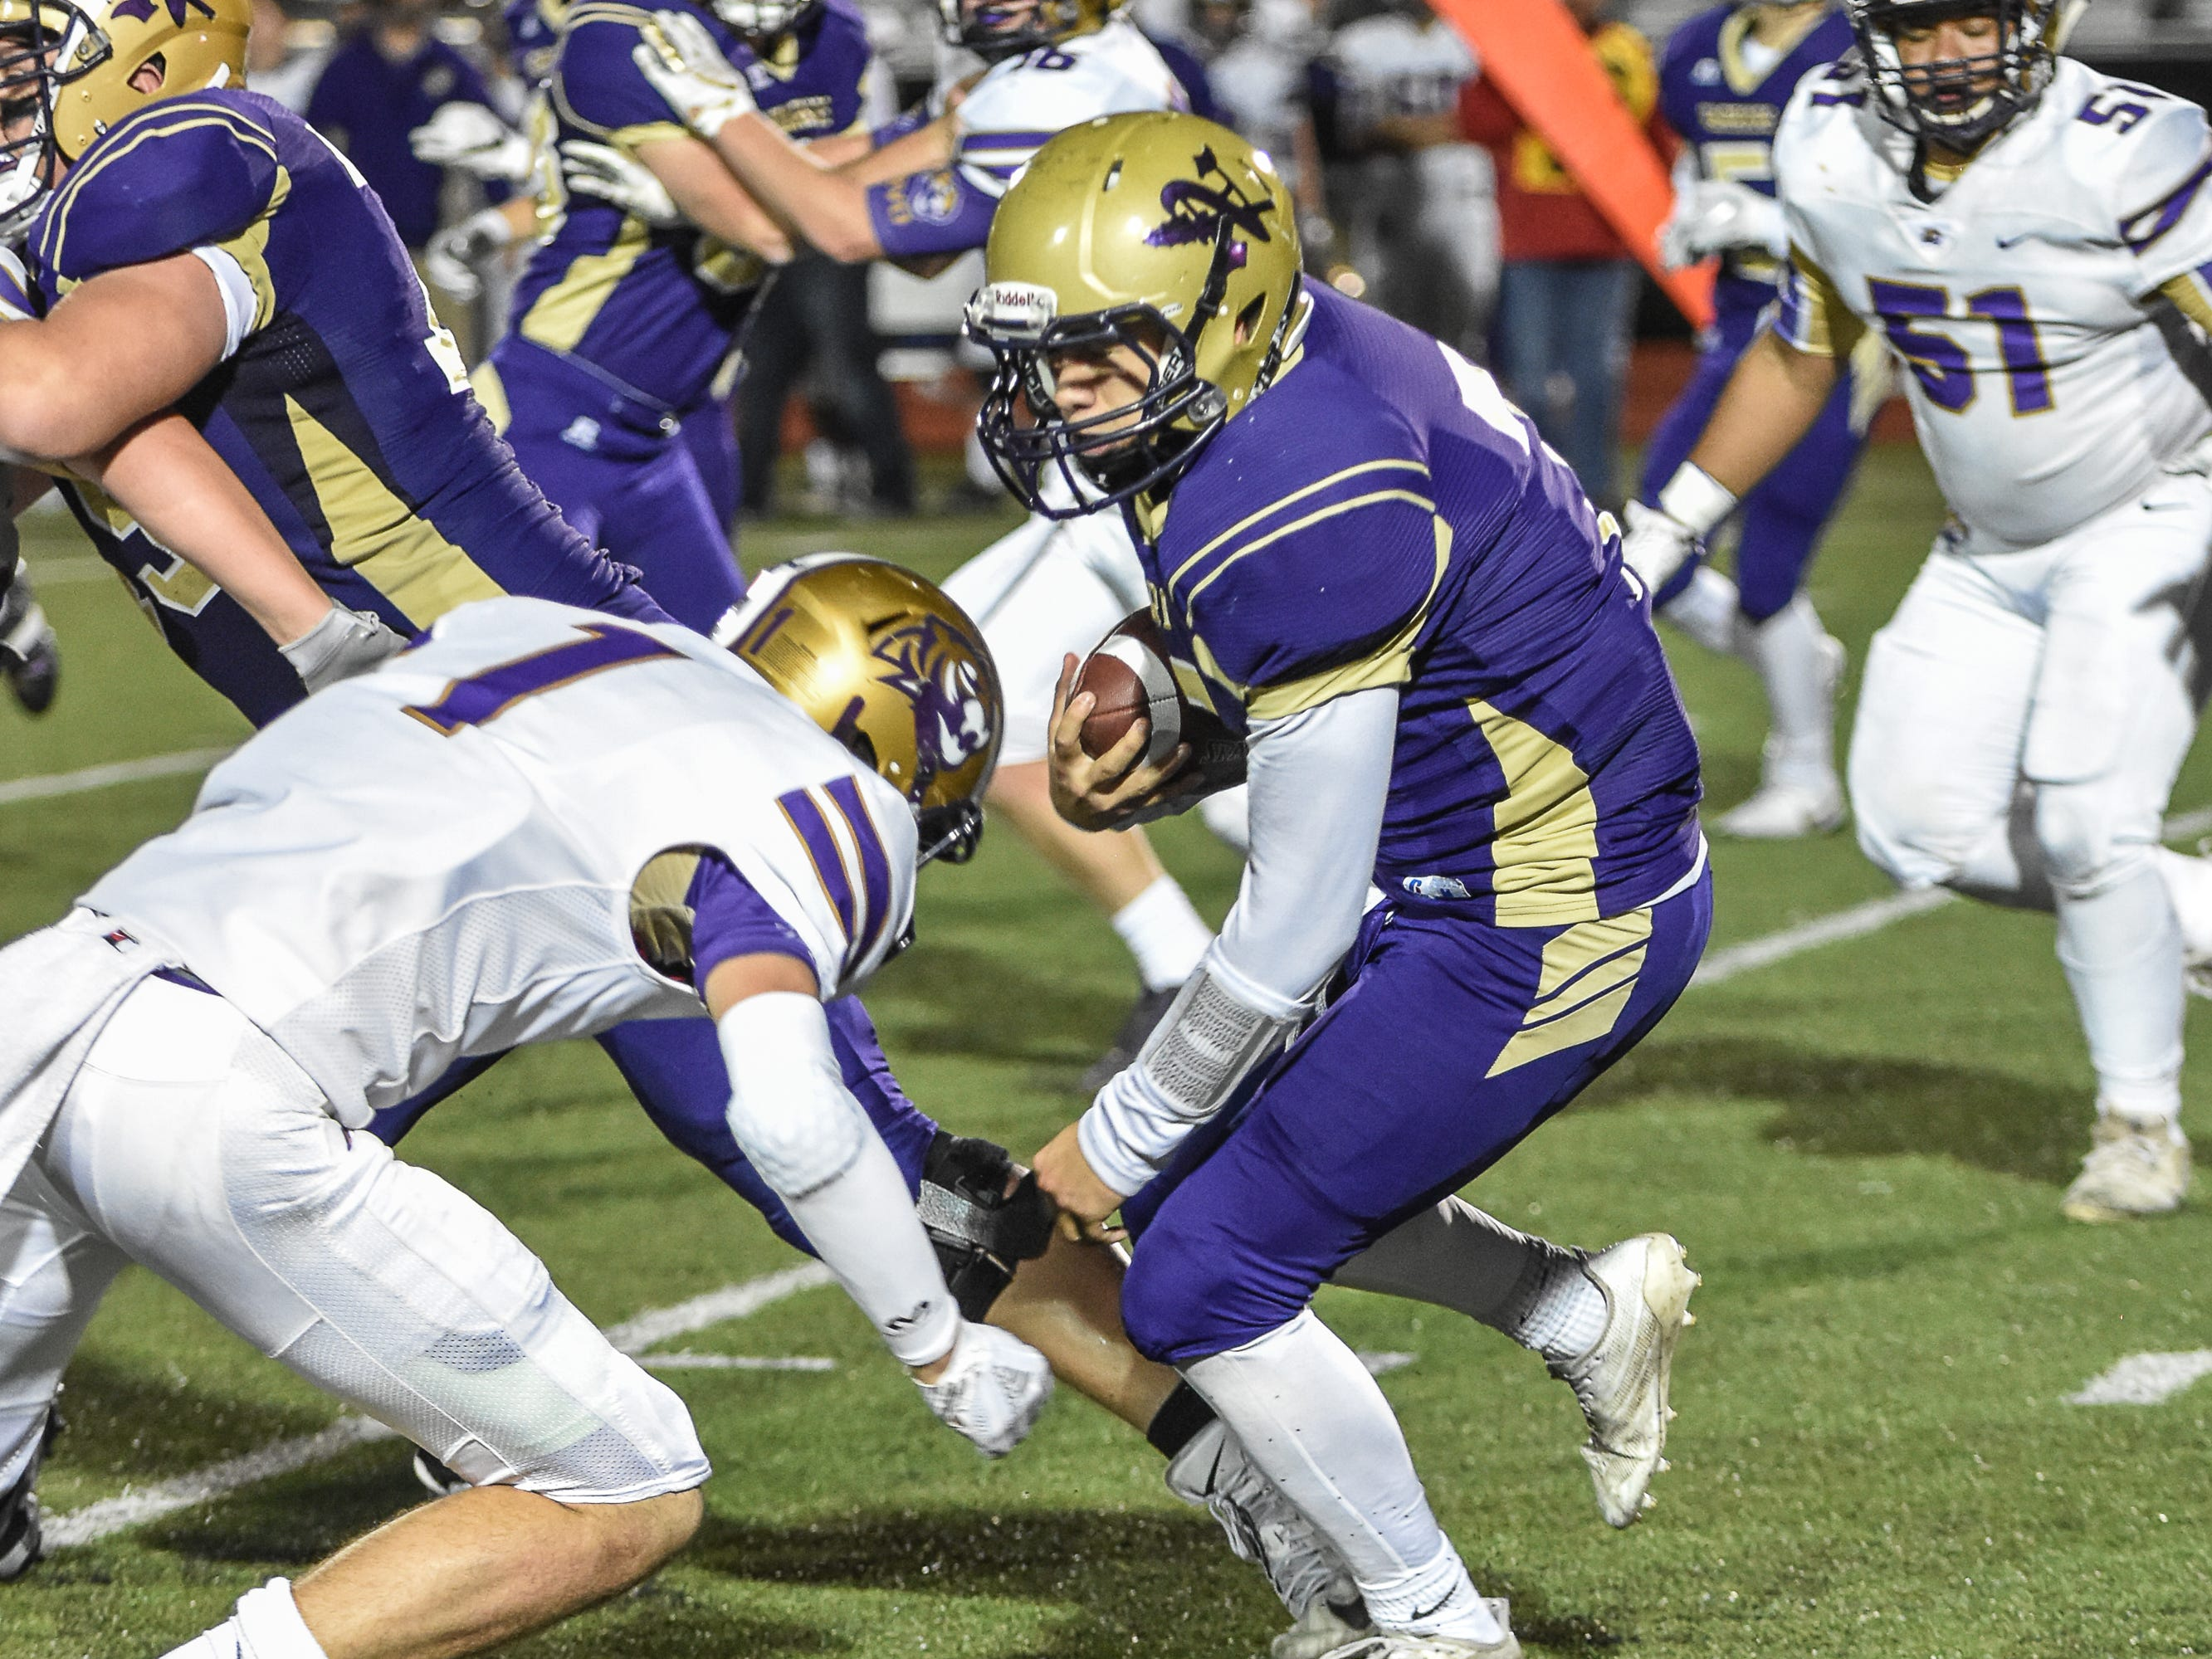 Norwalk's Max Sutcliffe rushes during a first-round playoff game against Spencer on Friday in Norwalk. Spencer ended Norwalk's season Oct. 26, 2018, with a 24-20 win in the first round of the Class 3A playoffs.